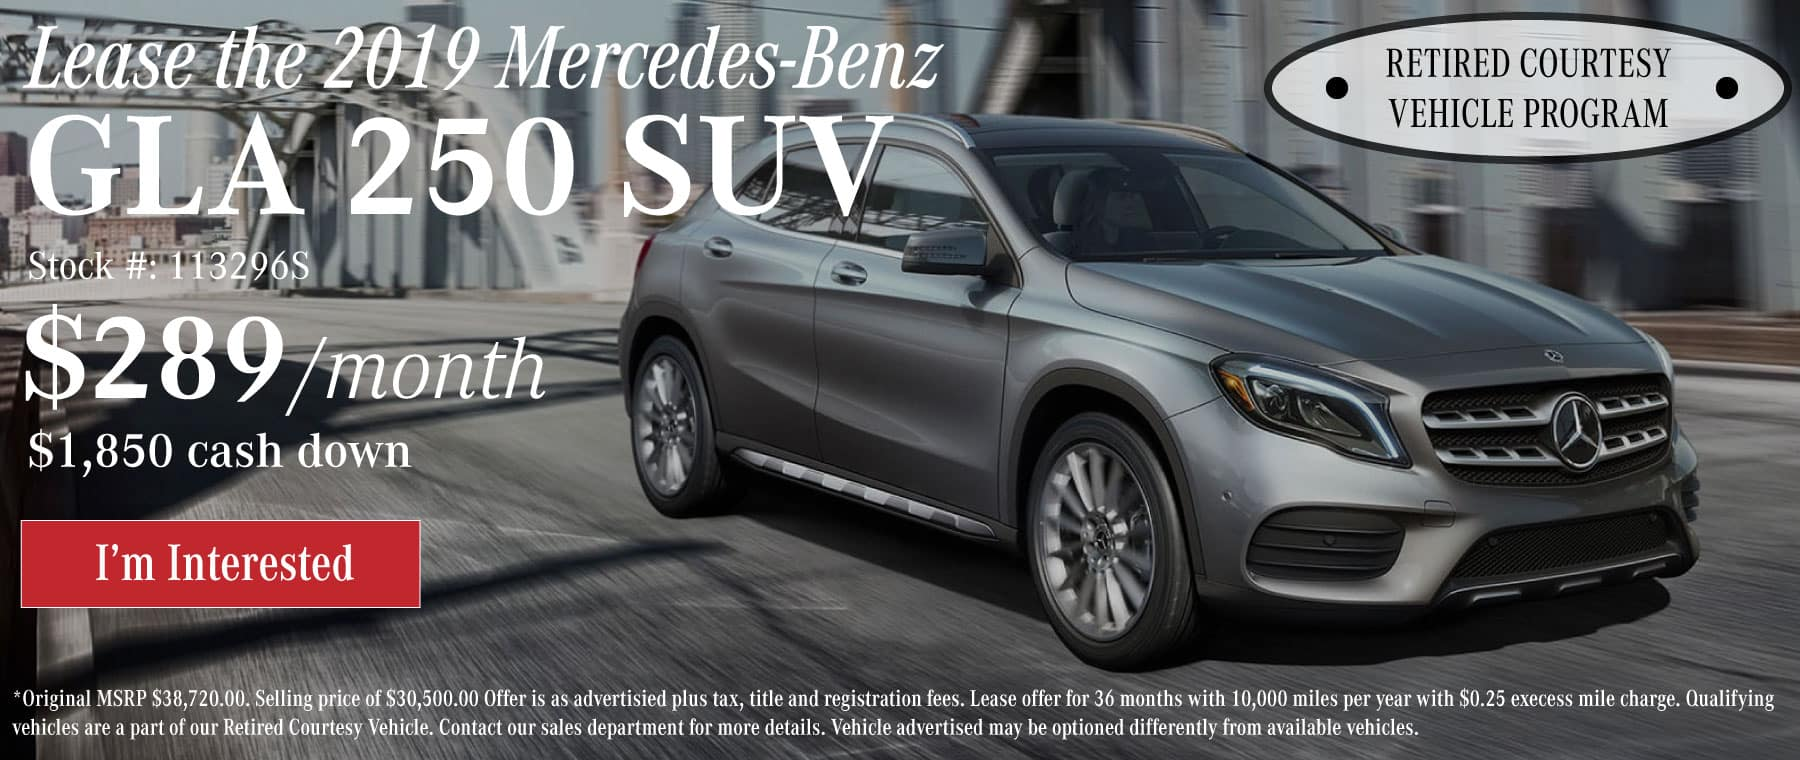 New and Pre-Owned Luxury Auto Dealer | Mercedes-Benz of Chandler